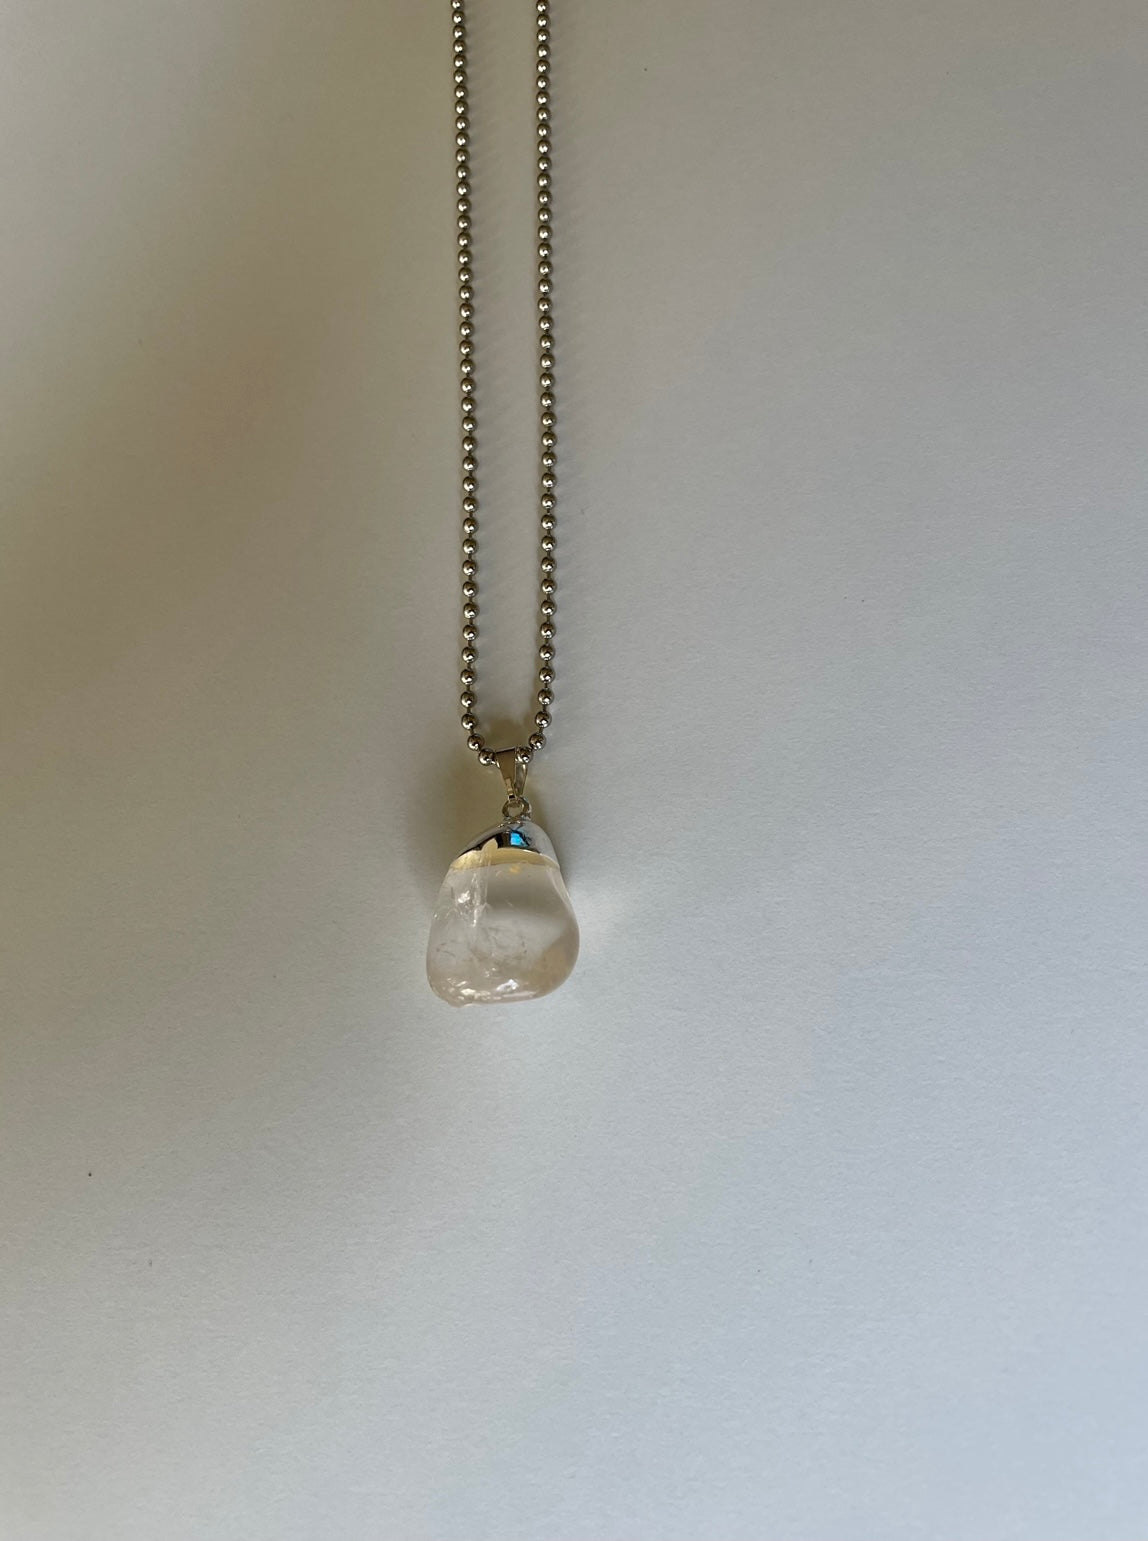 Heavy Medal clear quartz necklace